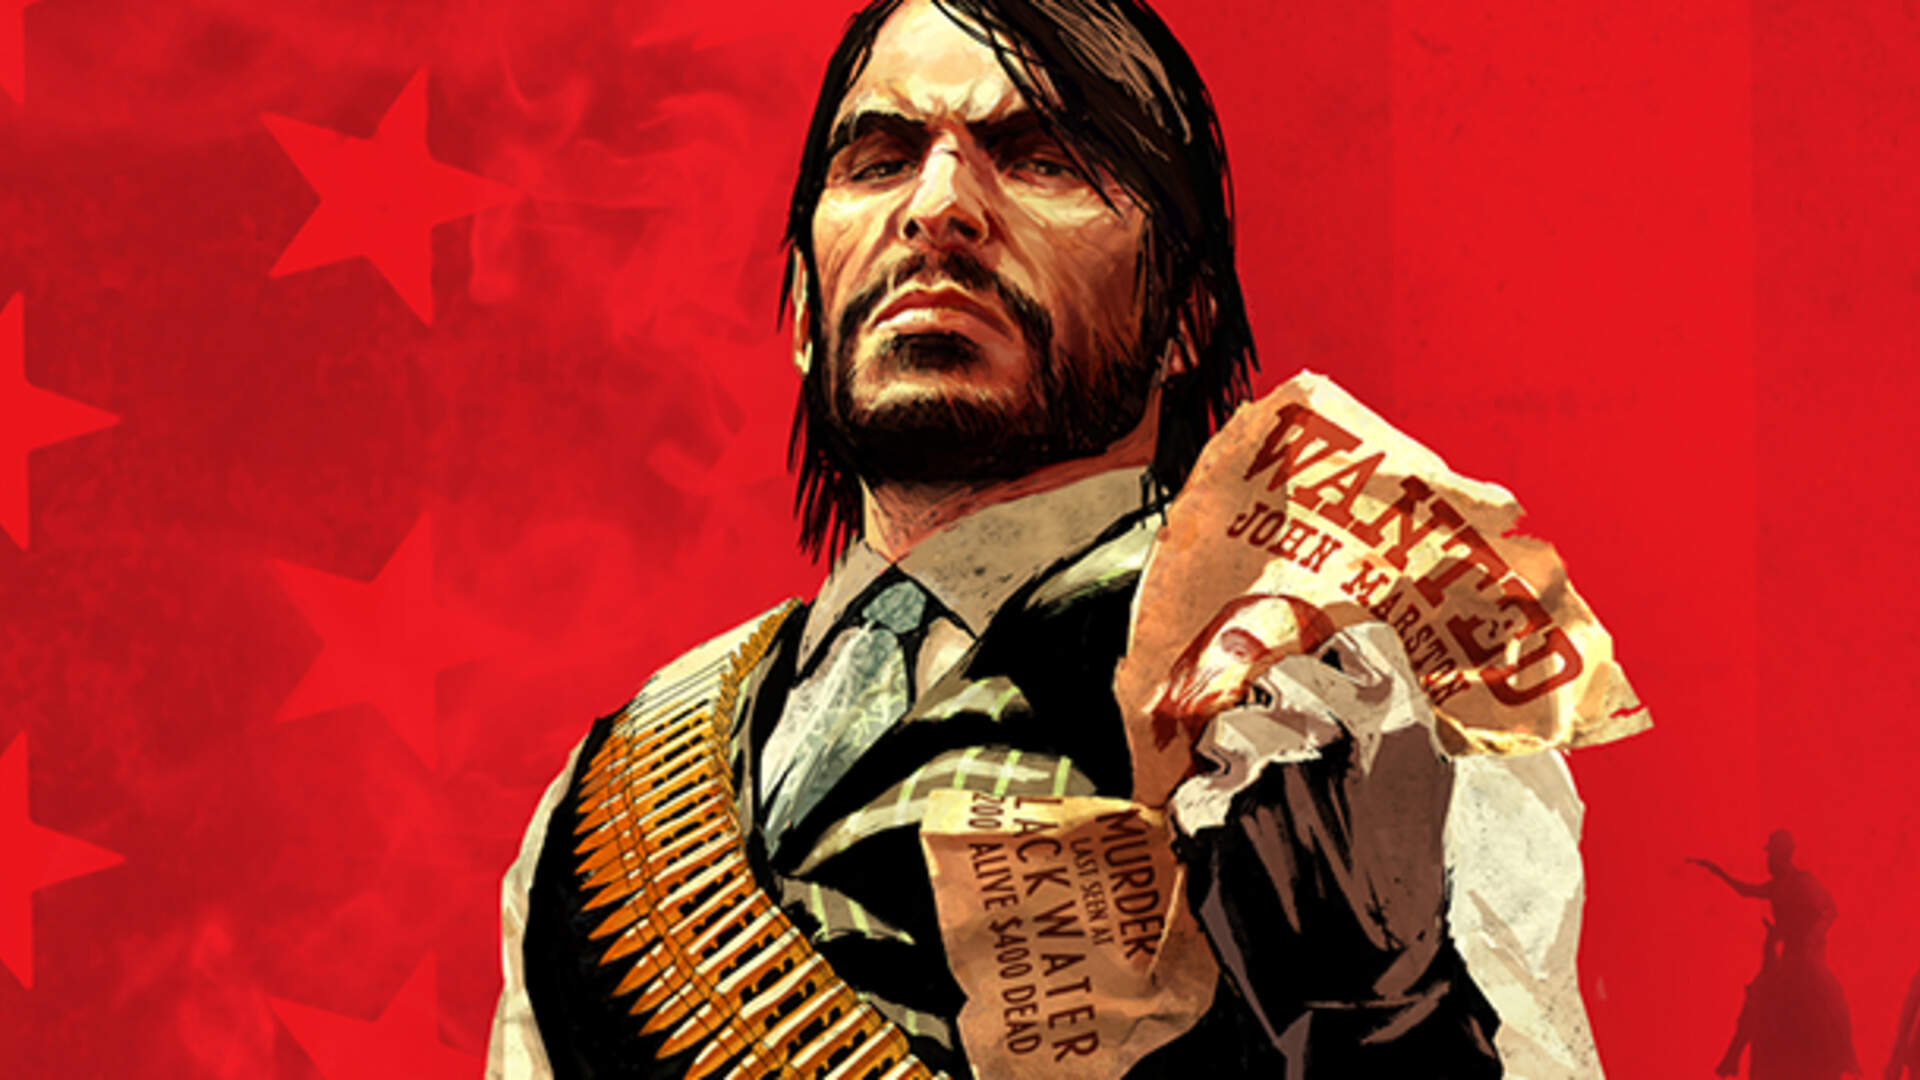 How a Somber Music Cue Defines the Beginning of Red Dead Redemption's Iconic Final Act